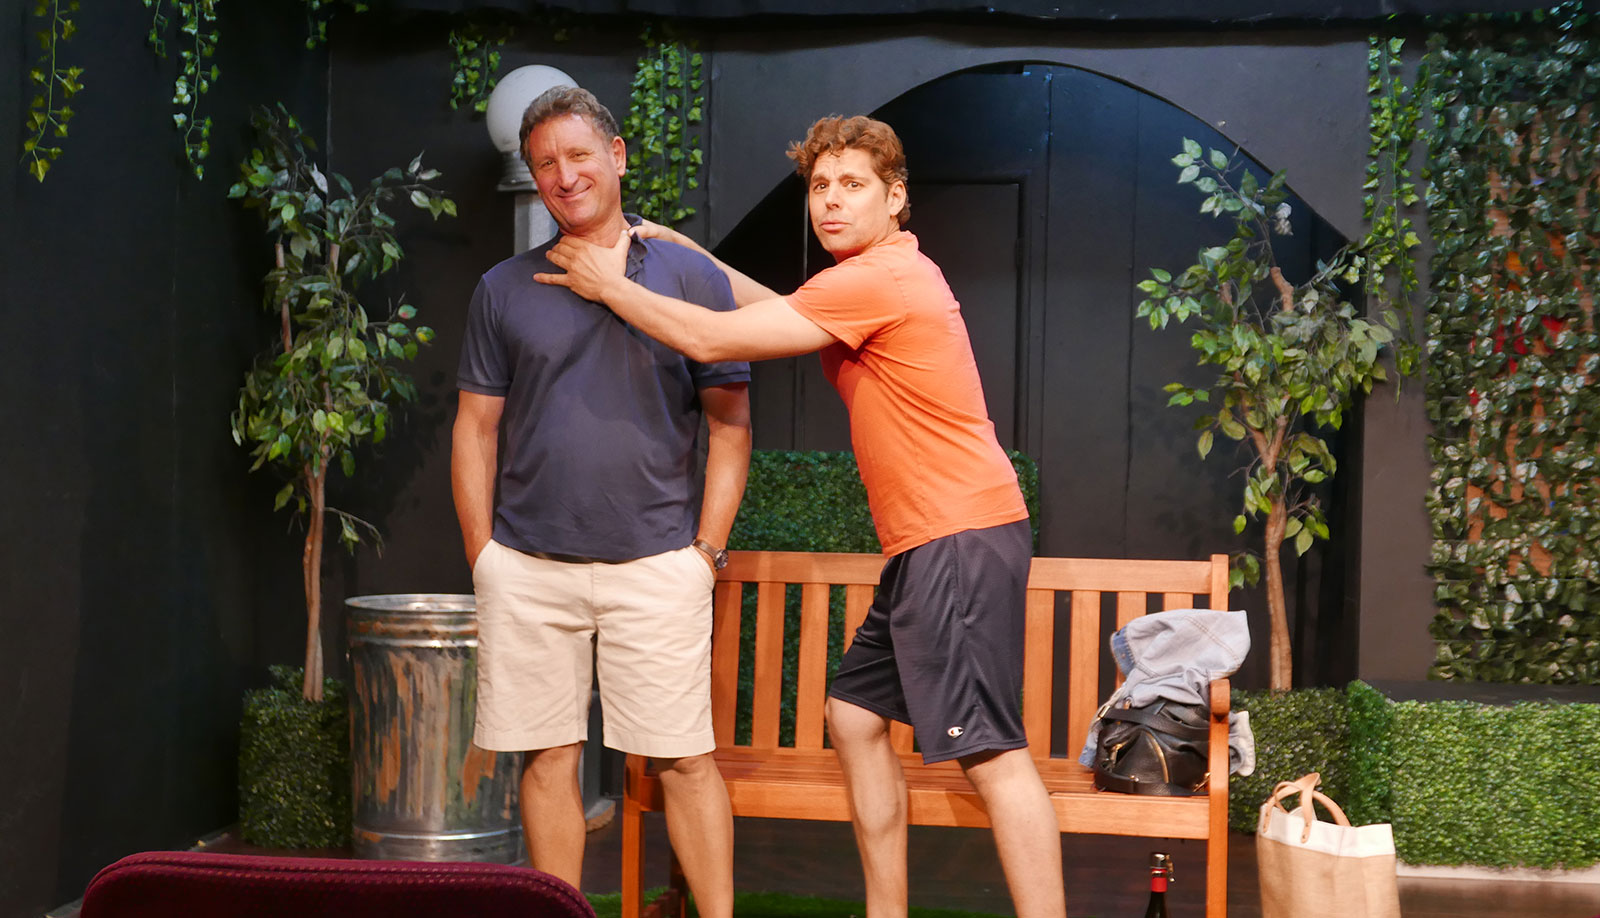 With David D'Amico post curtain call for Park Passages at  Actors Workout Studio  in N. Hollywood. David and I play brothers who let years of pent up resentment out during an argument over money. Next show tonight at 8pm.